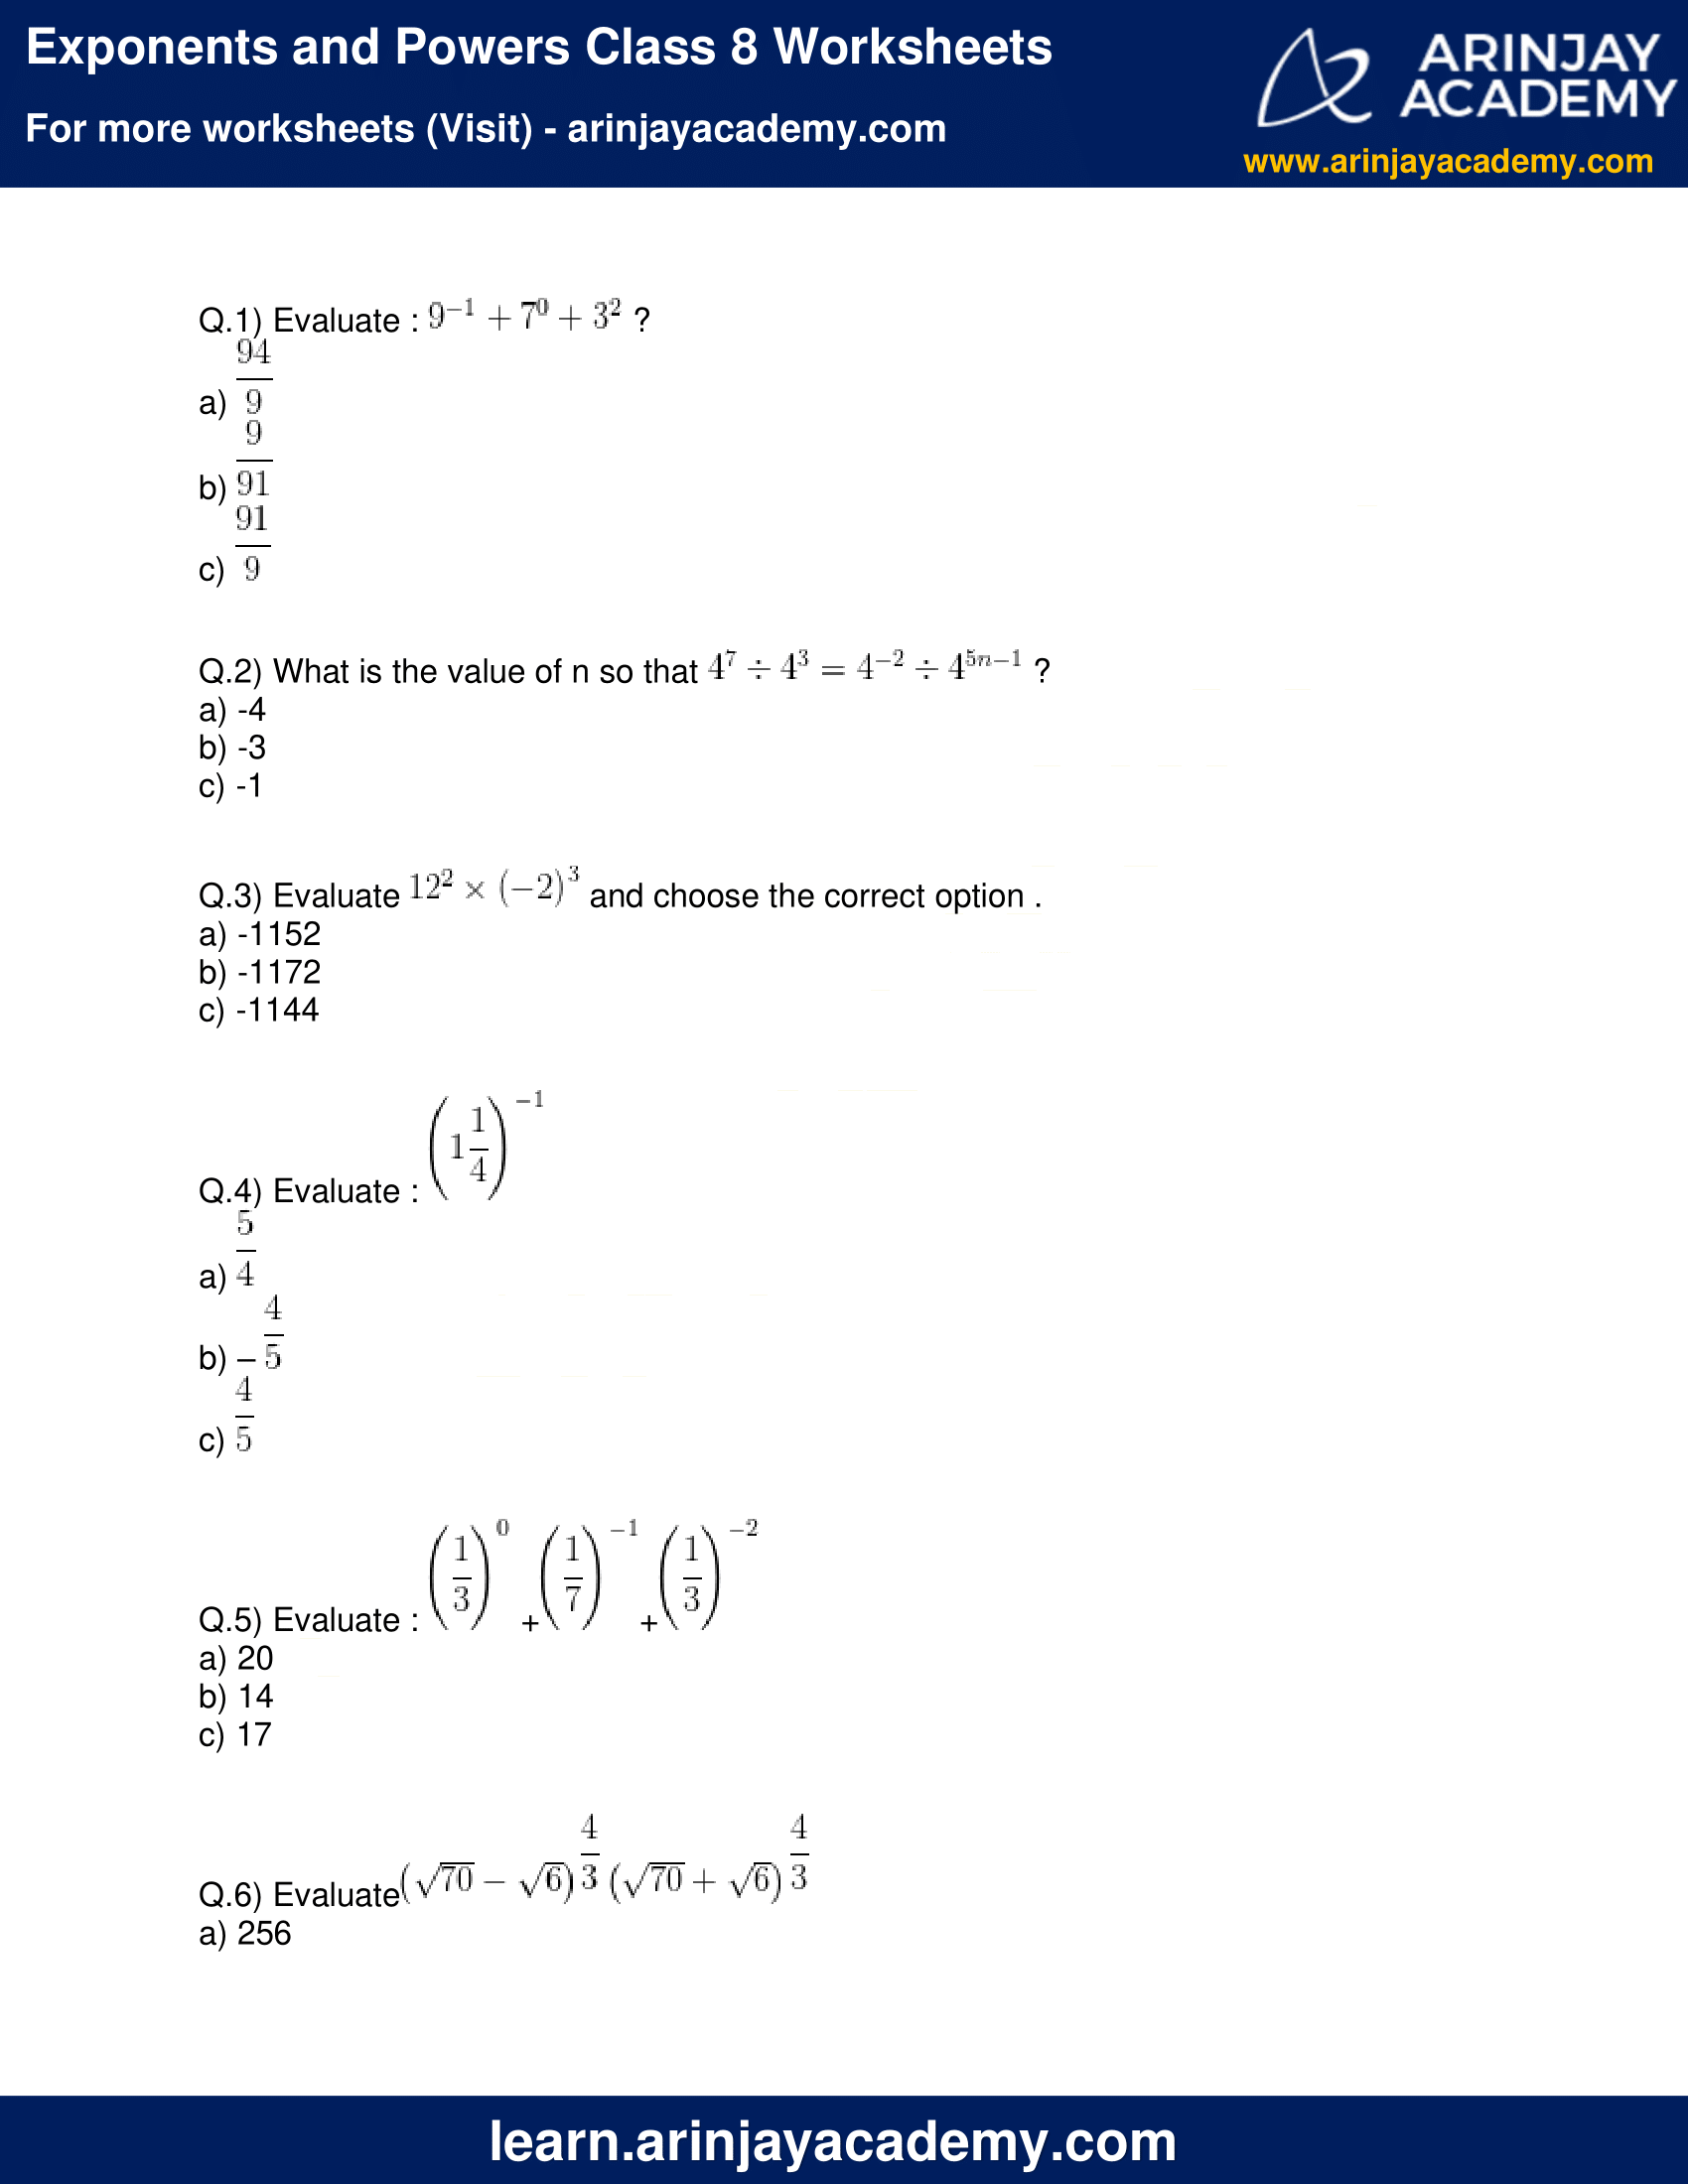 Worksheet On Exponents Class 8